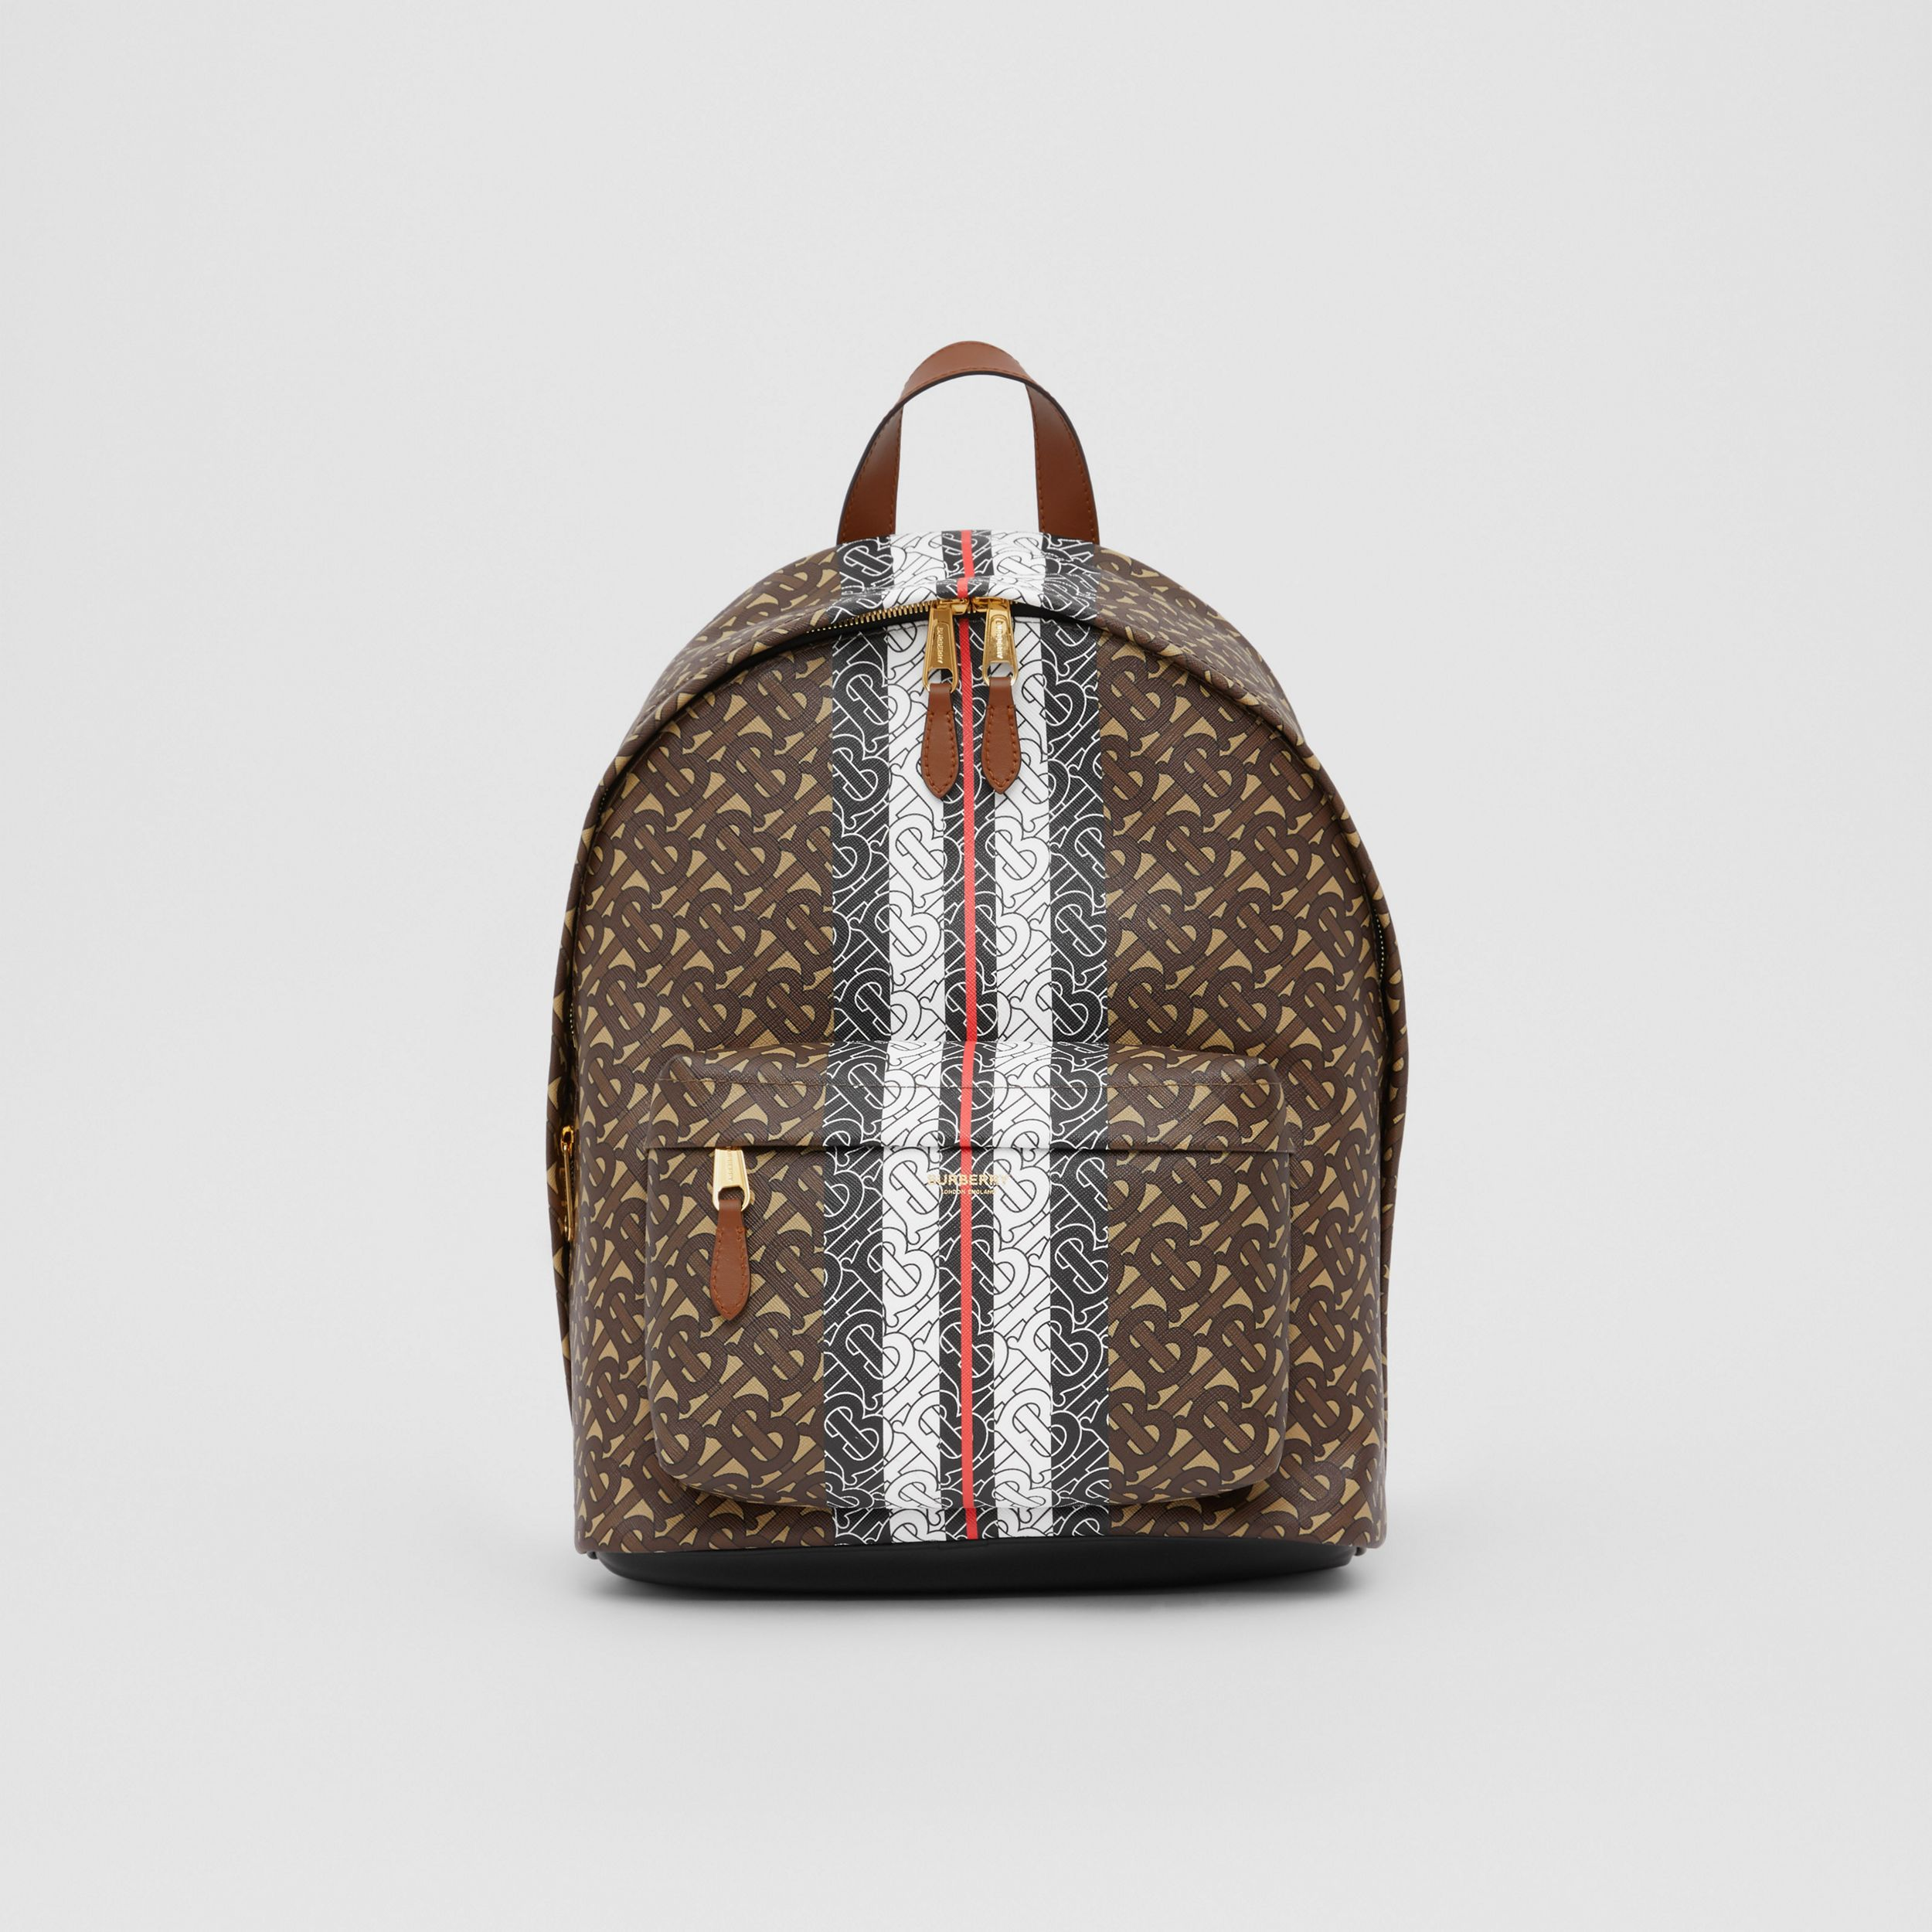 Monogram Stripe Print E-canvas Backpack in Bridle Brown | Burberry Hong Kong S.A.R - 1